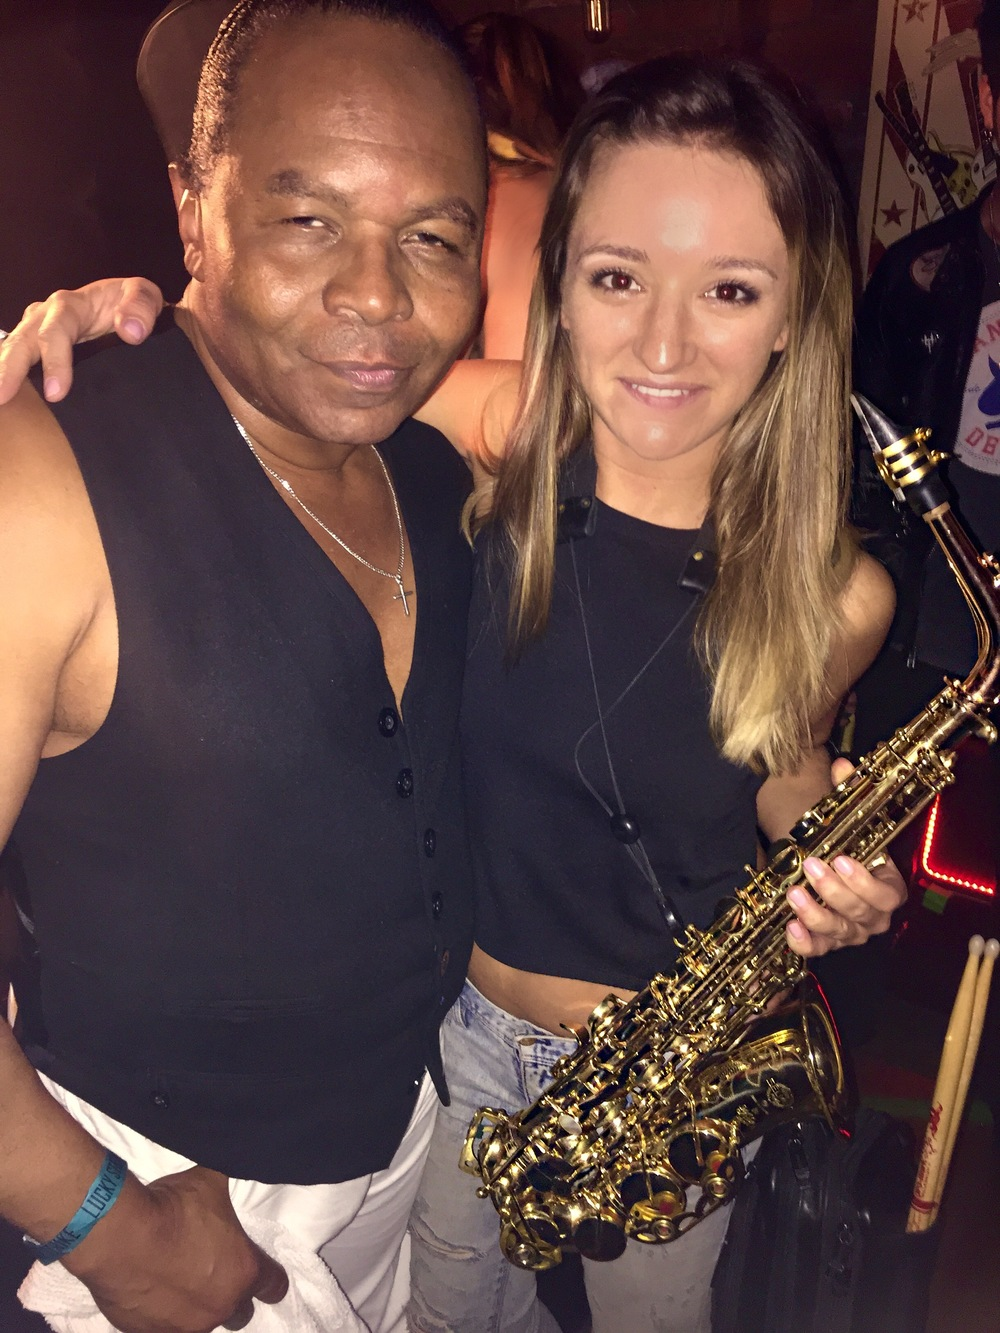 Jonathon Sugarfoot Moffett and Mandy Faddis saxophone at Lucky Strike Live